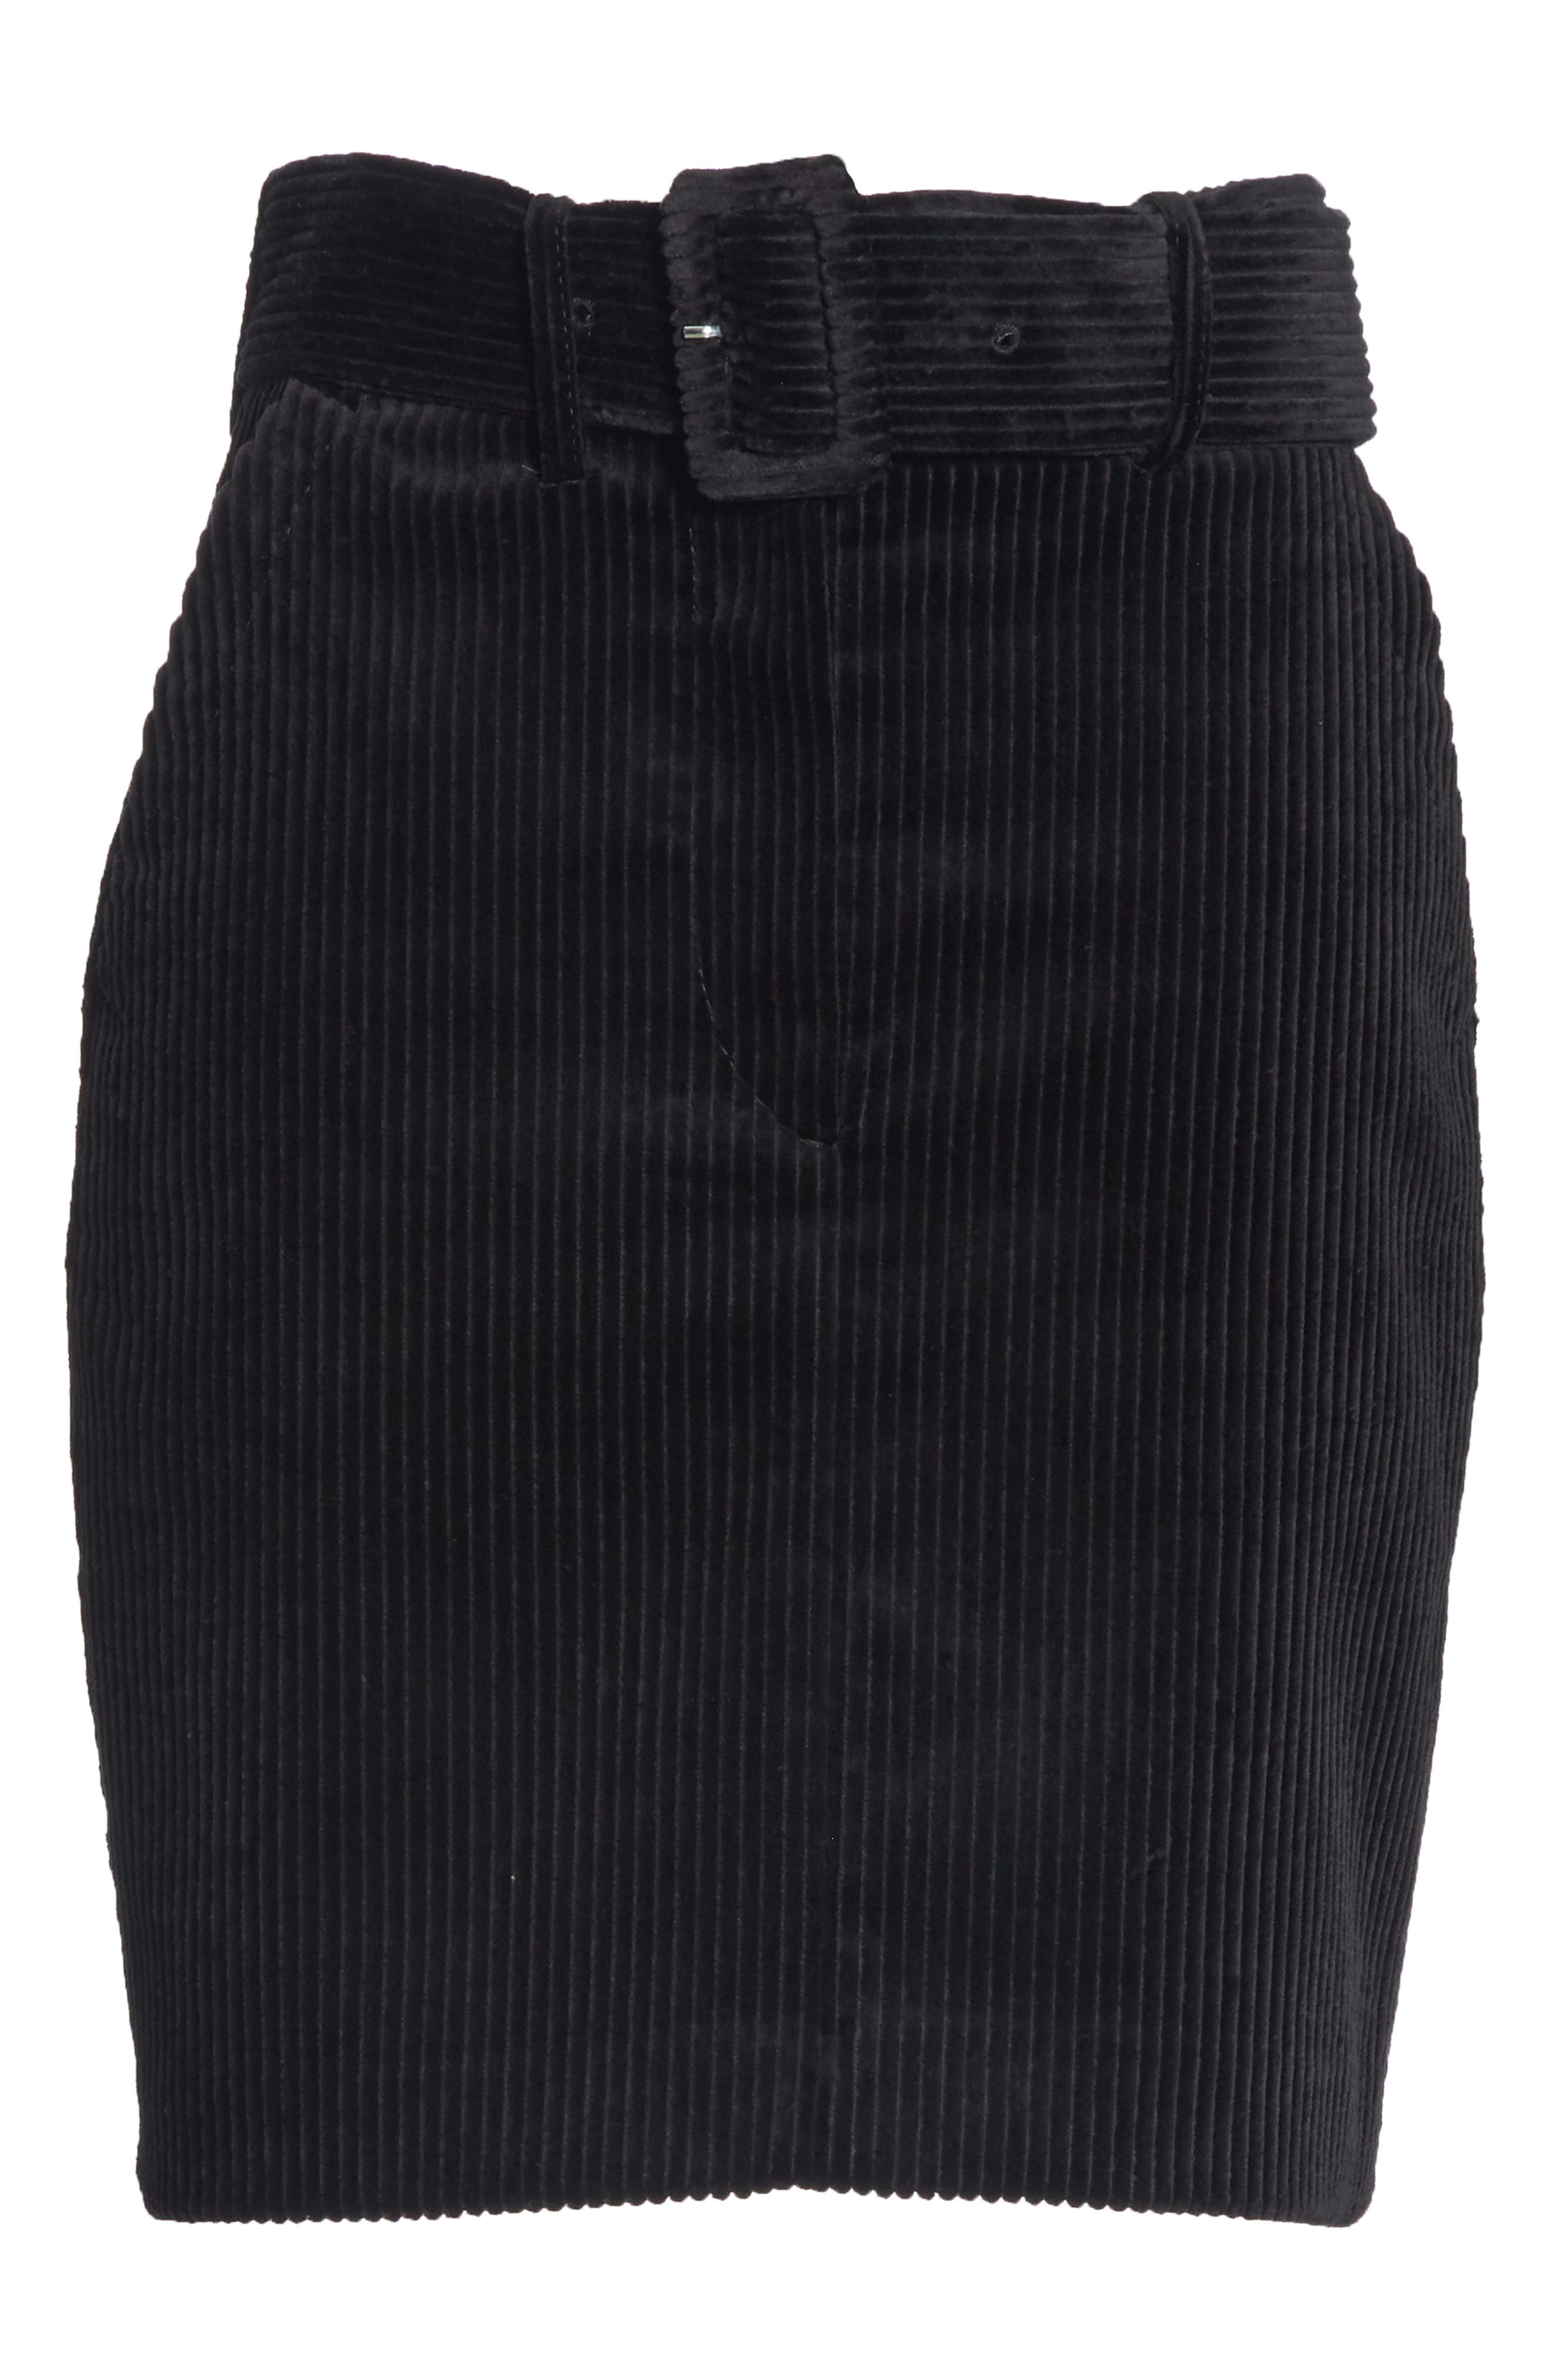 SANDRO,                             Belted Corduroy Skirt,                             Alternate thumbnail 6, color,                             001